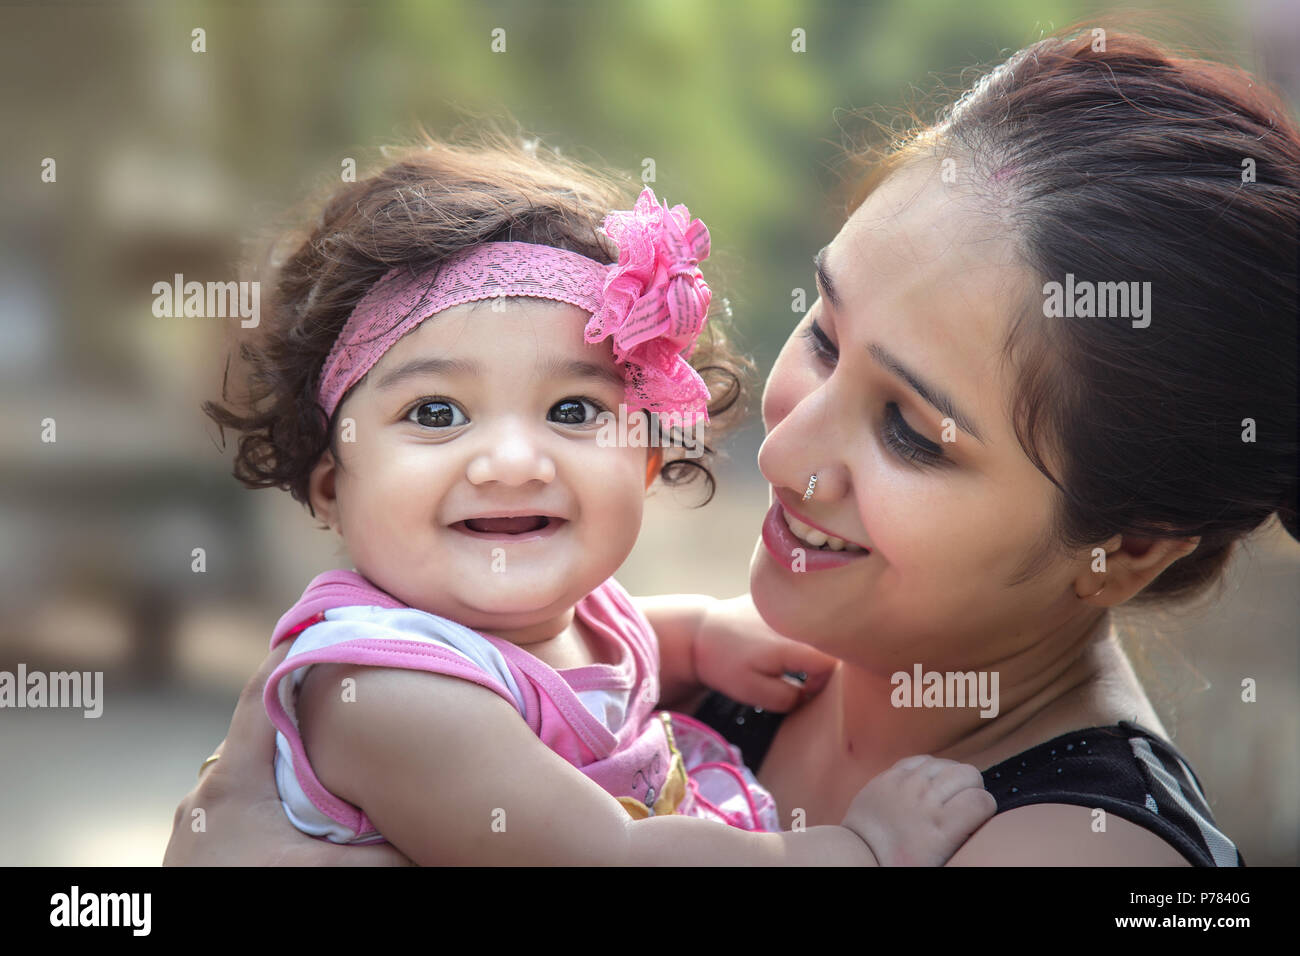 Indian Mother And Baby Stock Photos & Indian Mother And Baby